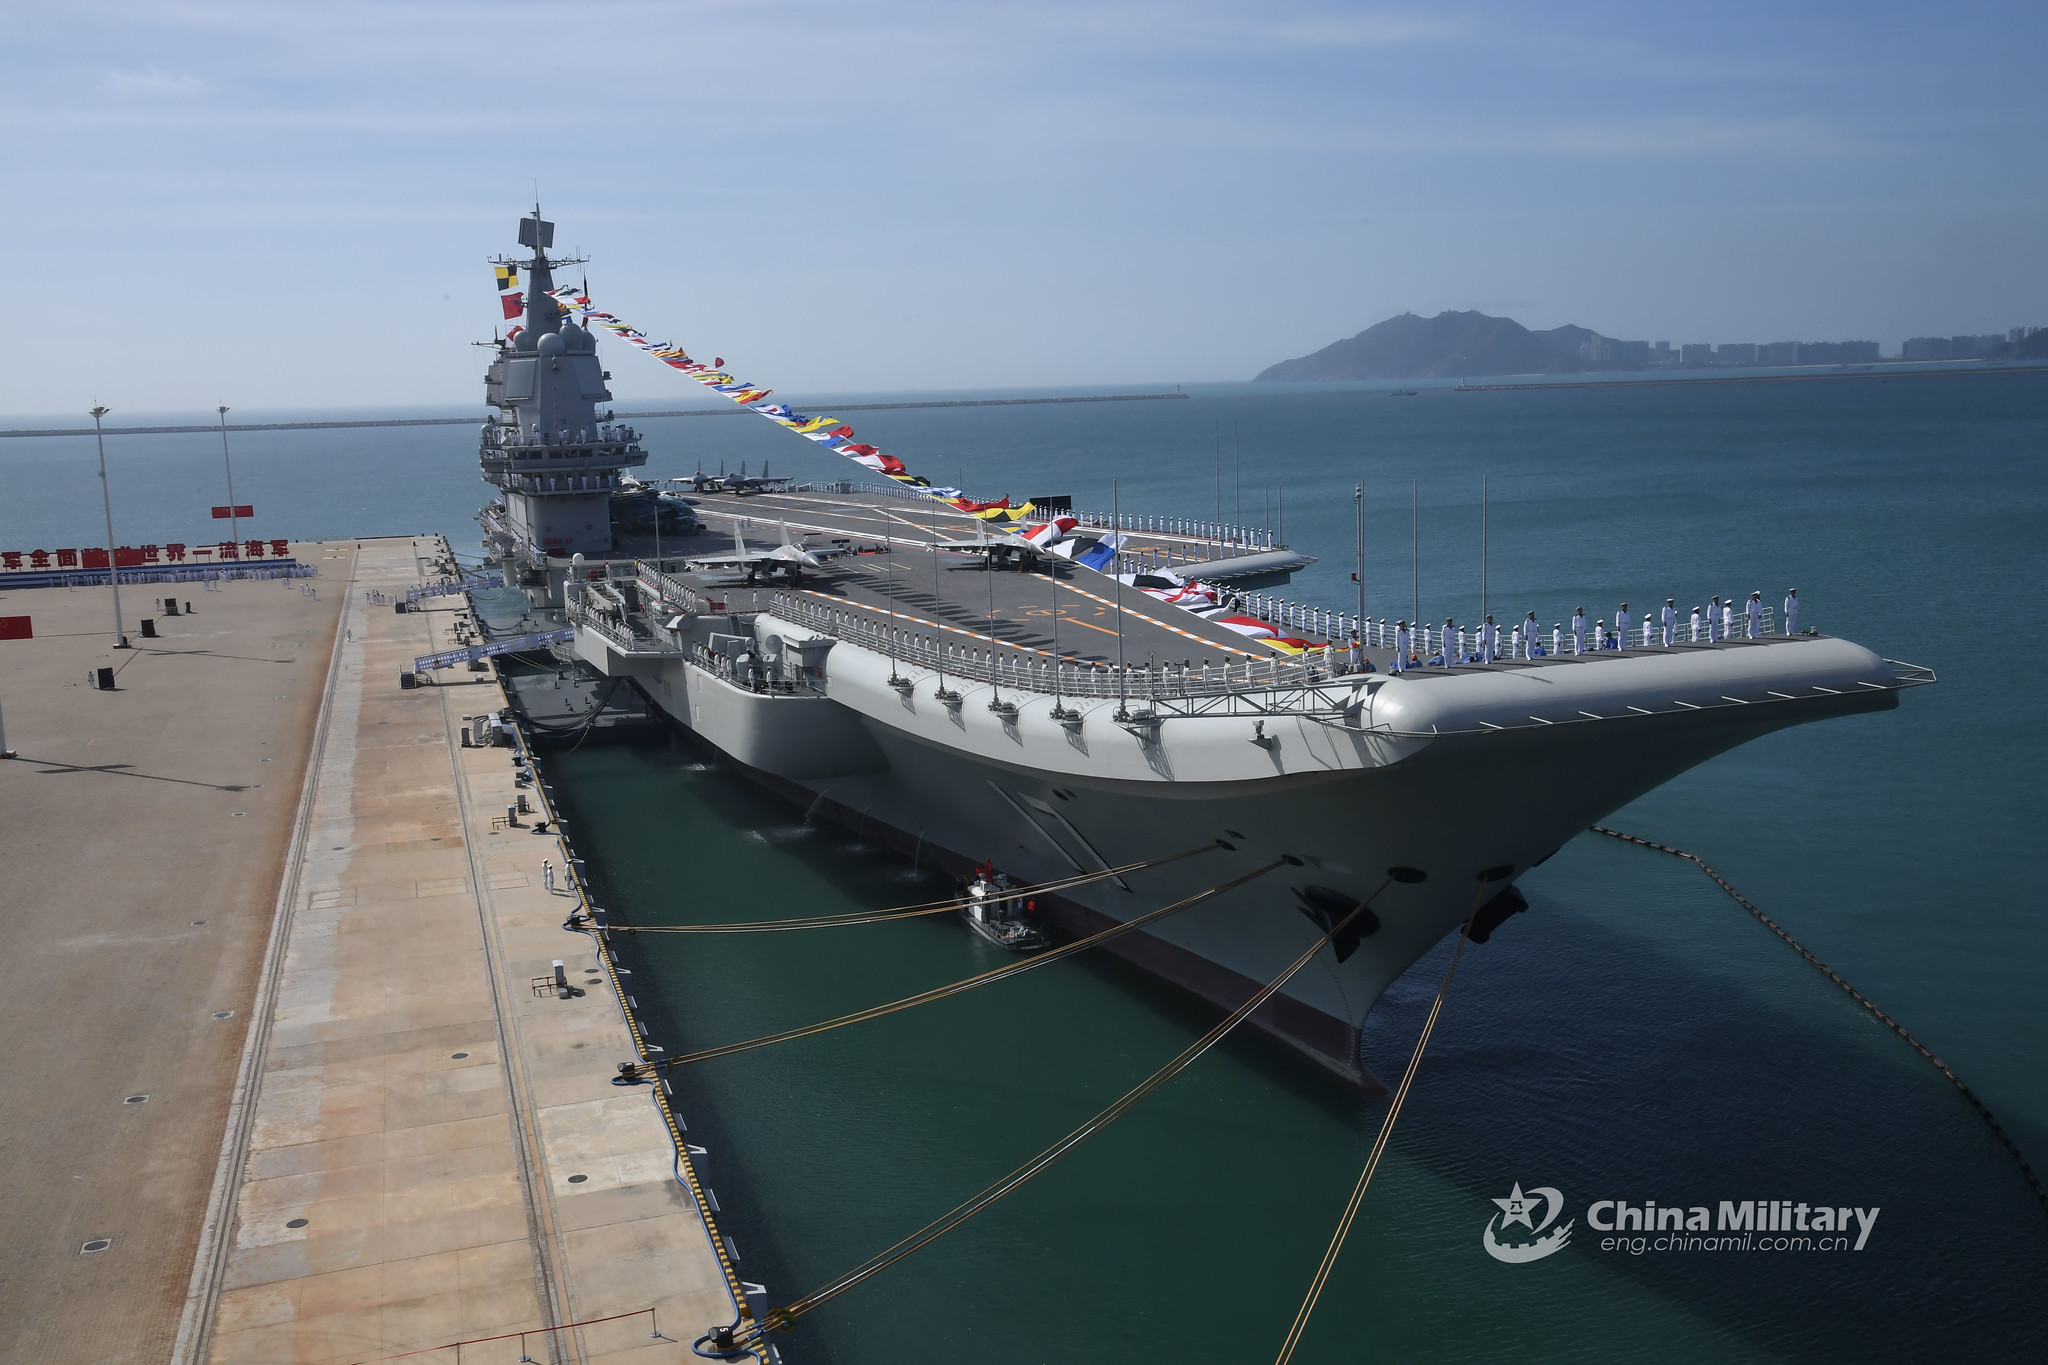 Chinese aircraft carrier program - Page 5 49276774096_79169eb3d6_k